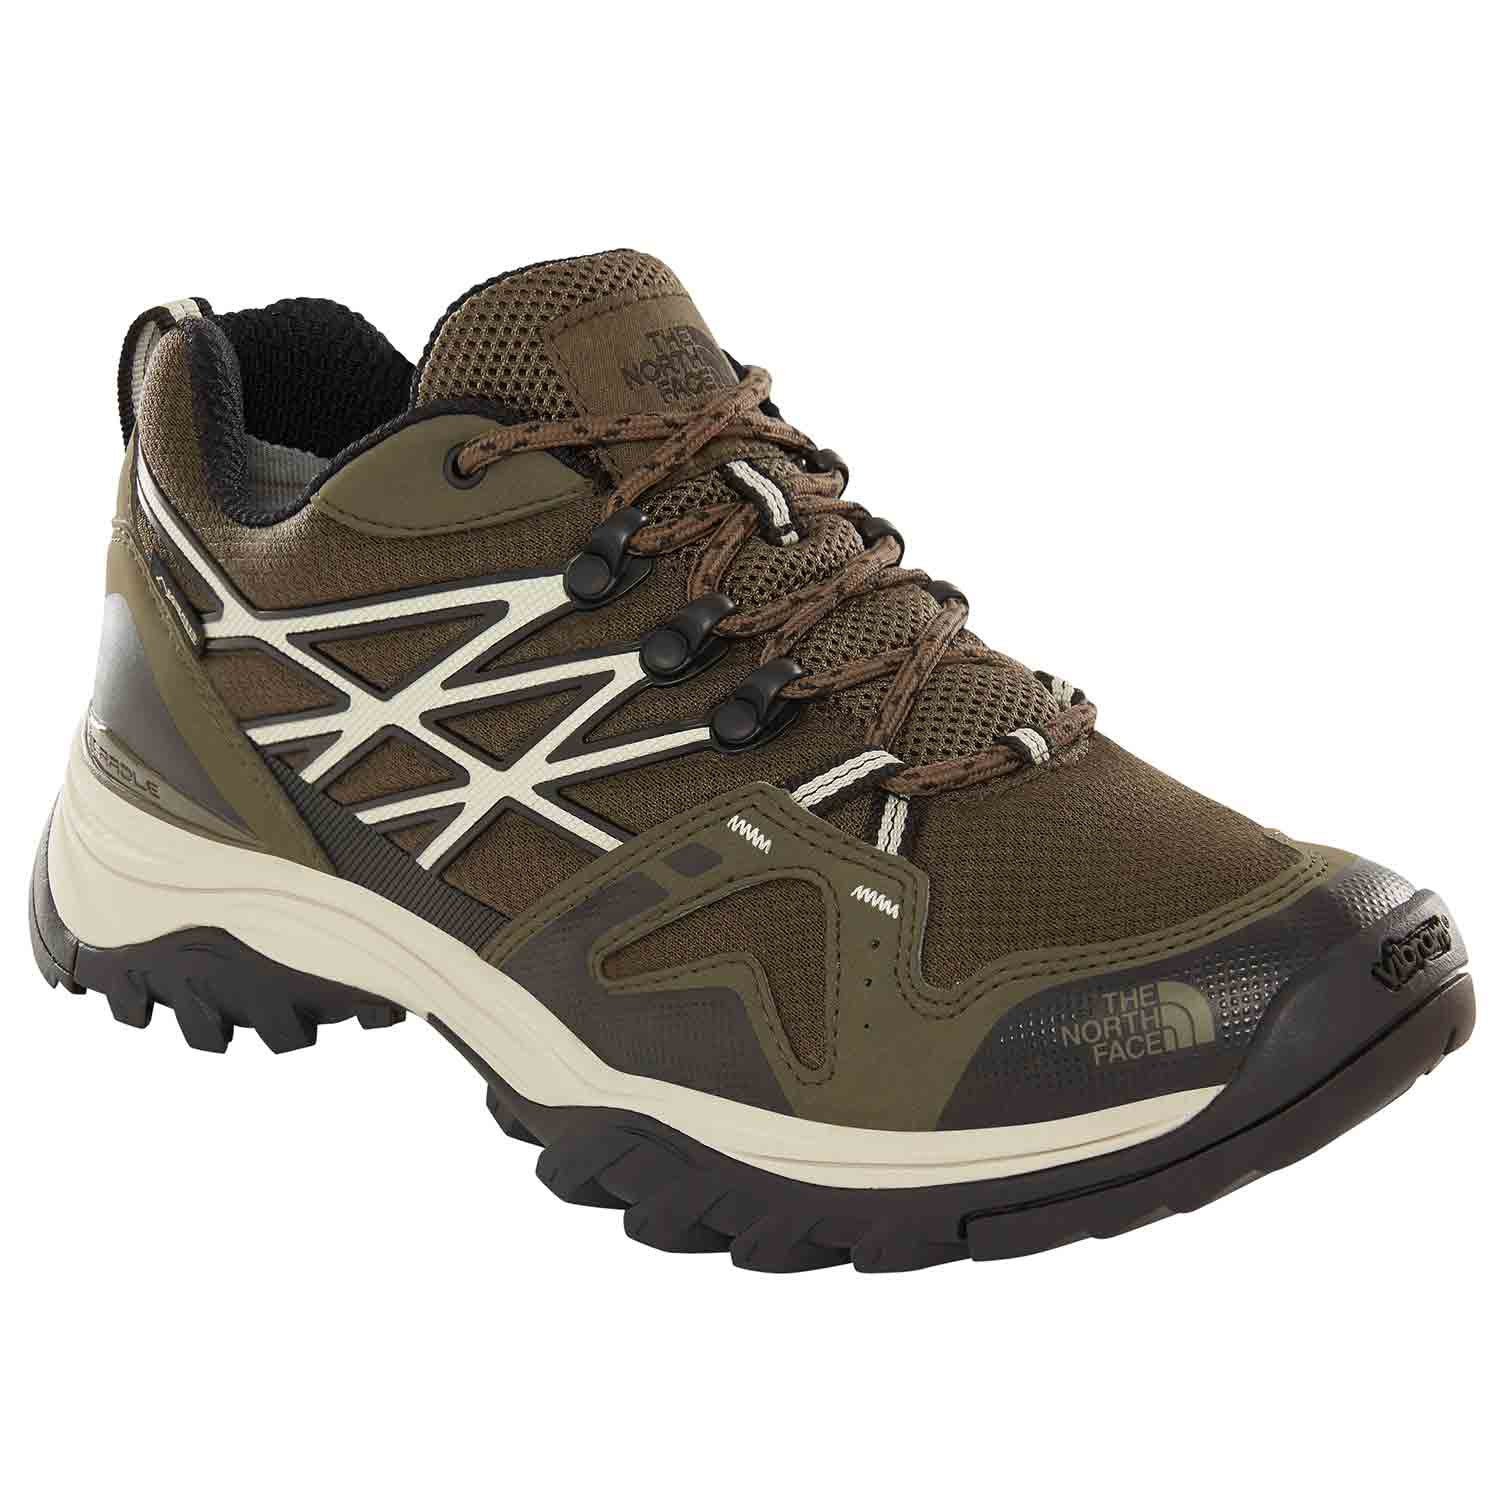 4821fdde9f4 Details about The North Face Hedgehog Fastpack Gtx Mens Footwear Walking  Shoes - New Taupe